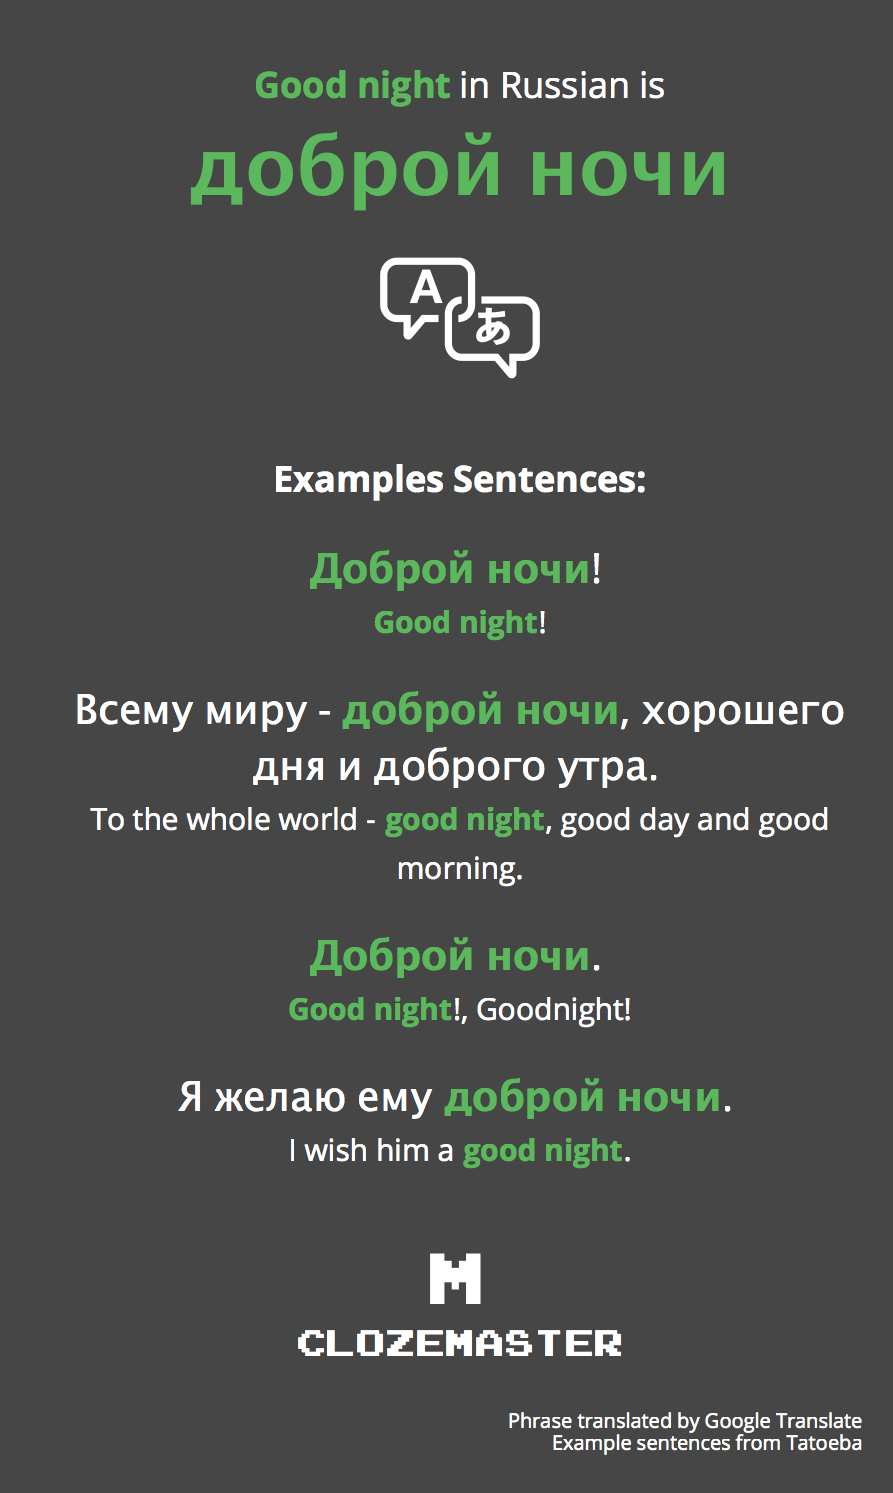 How To Say Good Night In Russian Clozemaster